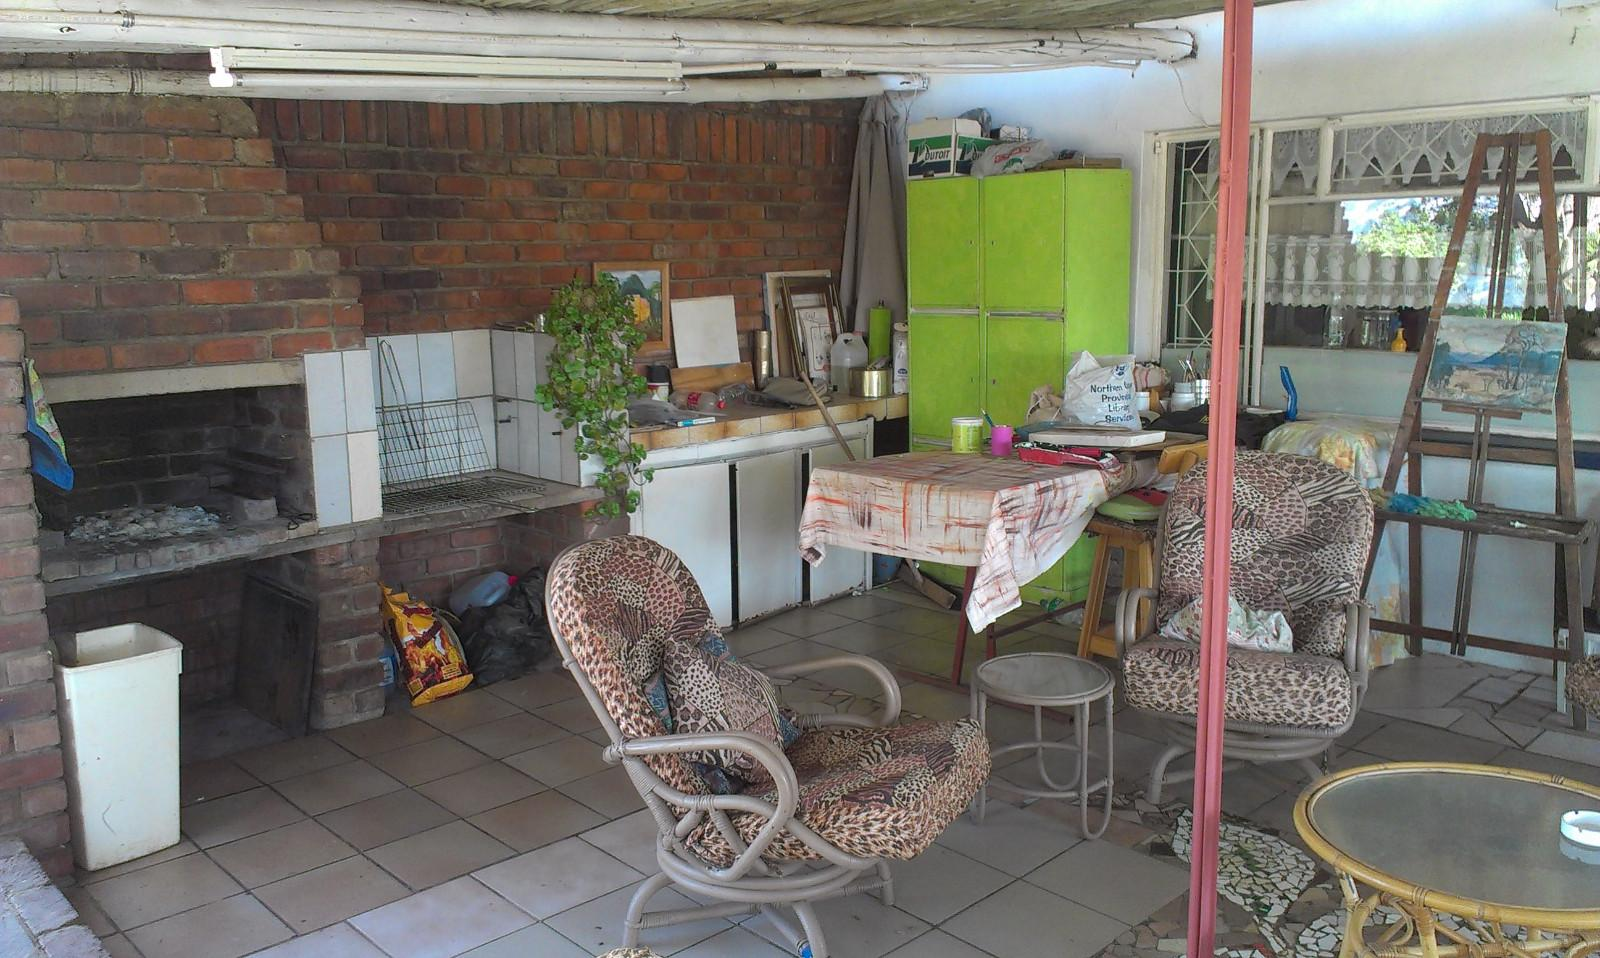 Vyfhoek property for sale. Ref No: 13350093. Picture no 17